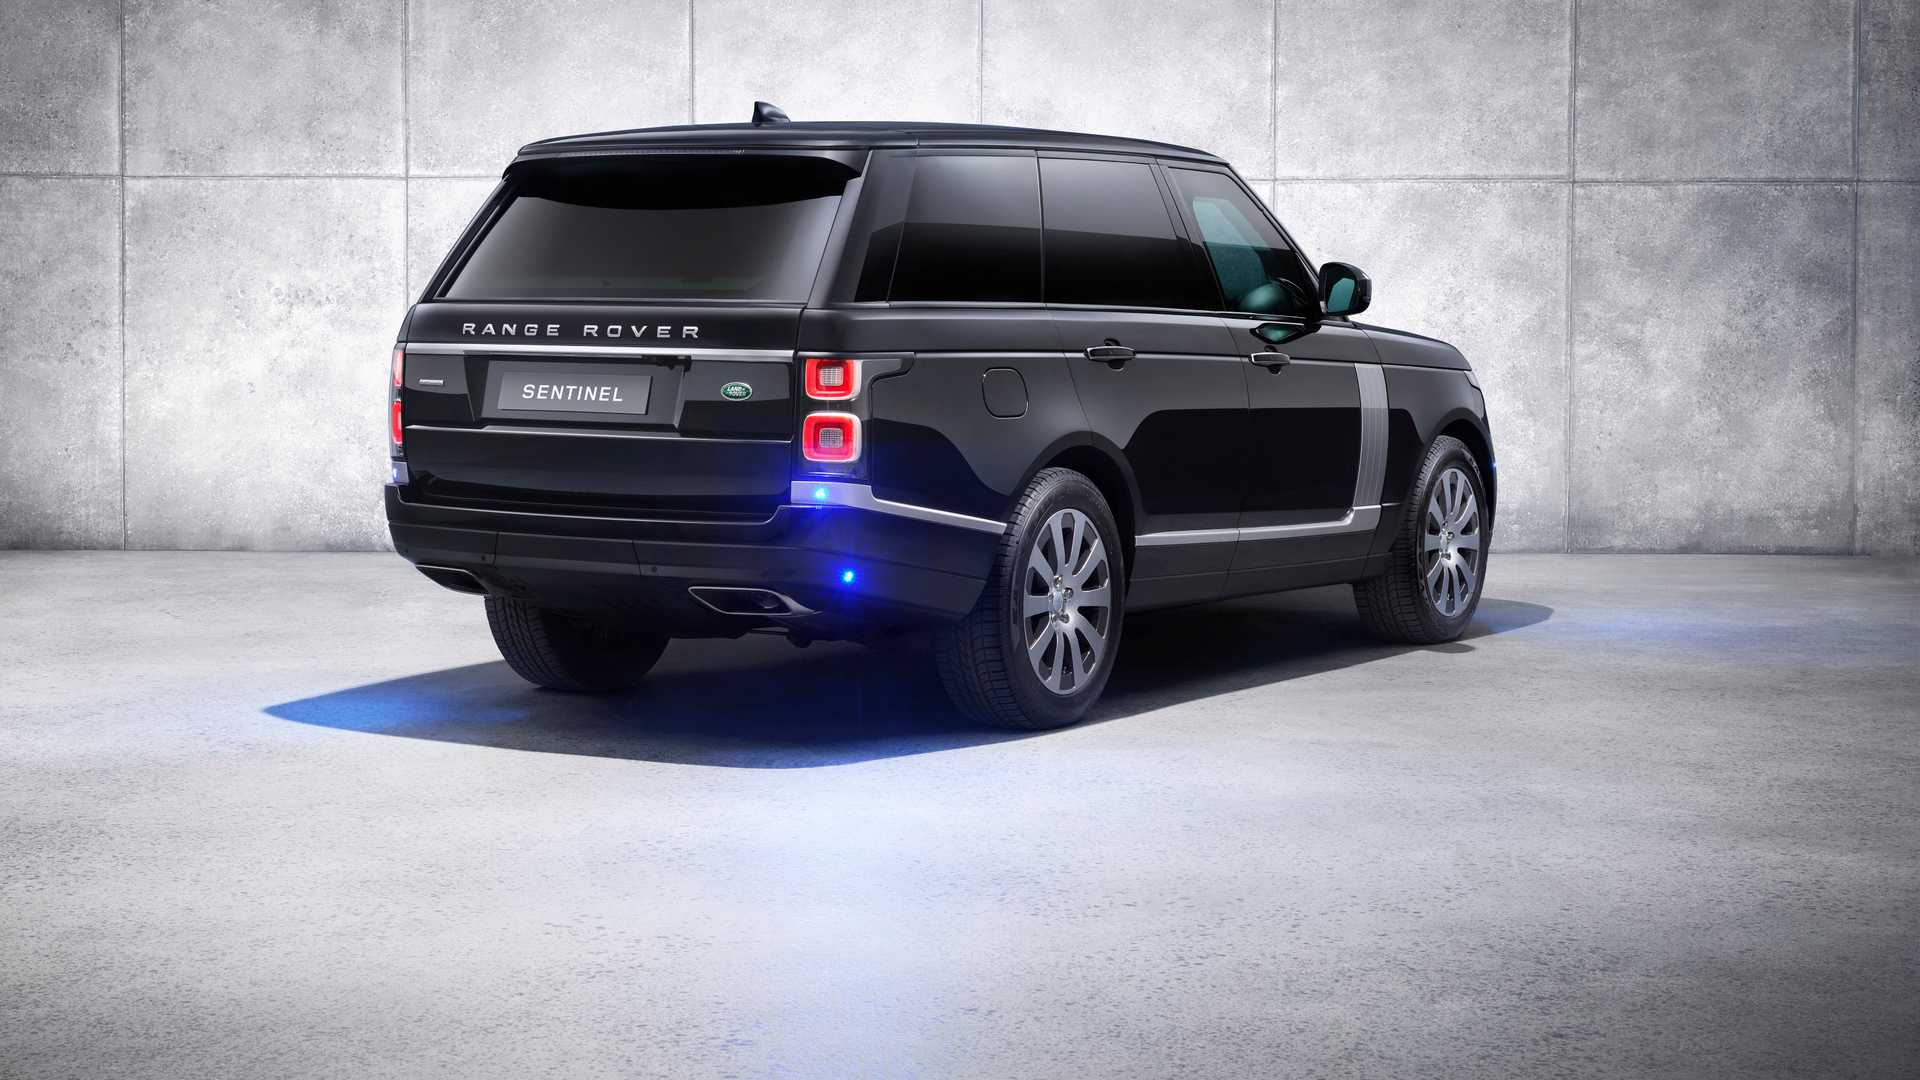 2019 Range Rover Sentinel Armored Vehicle Rear Three-Quarter Wallpapers (6)